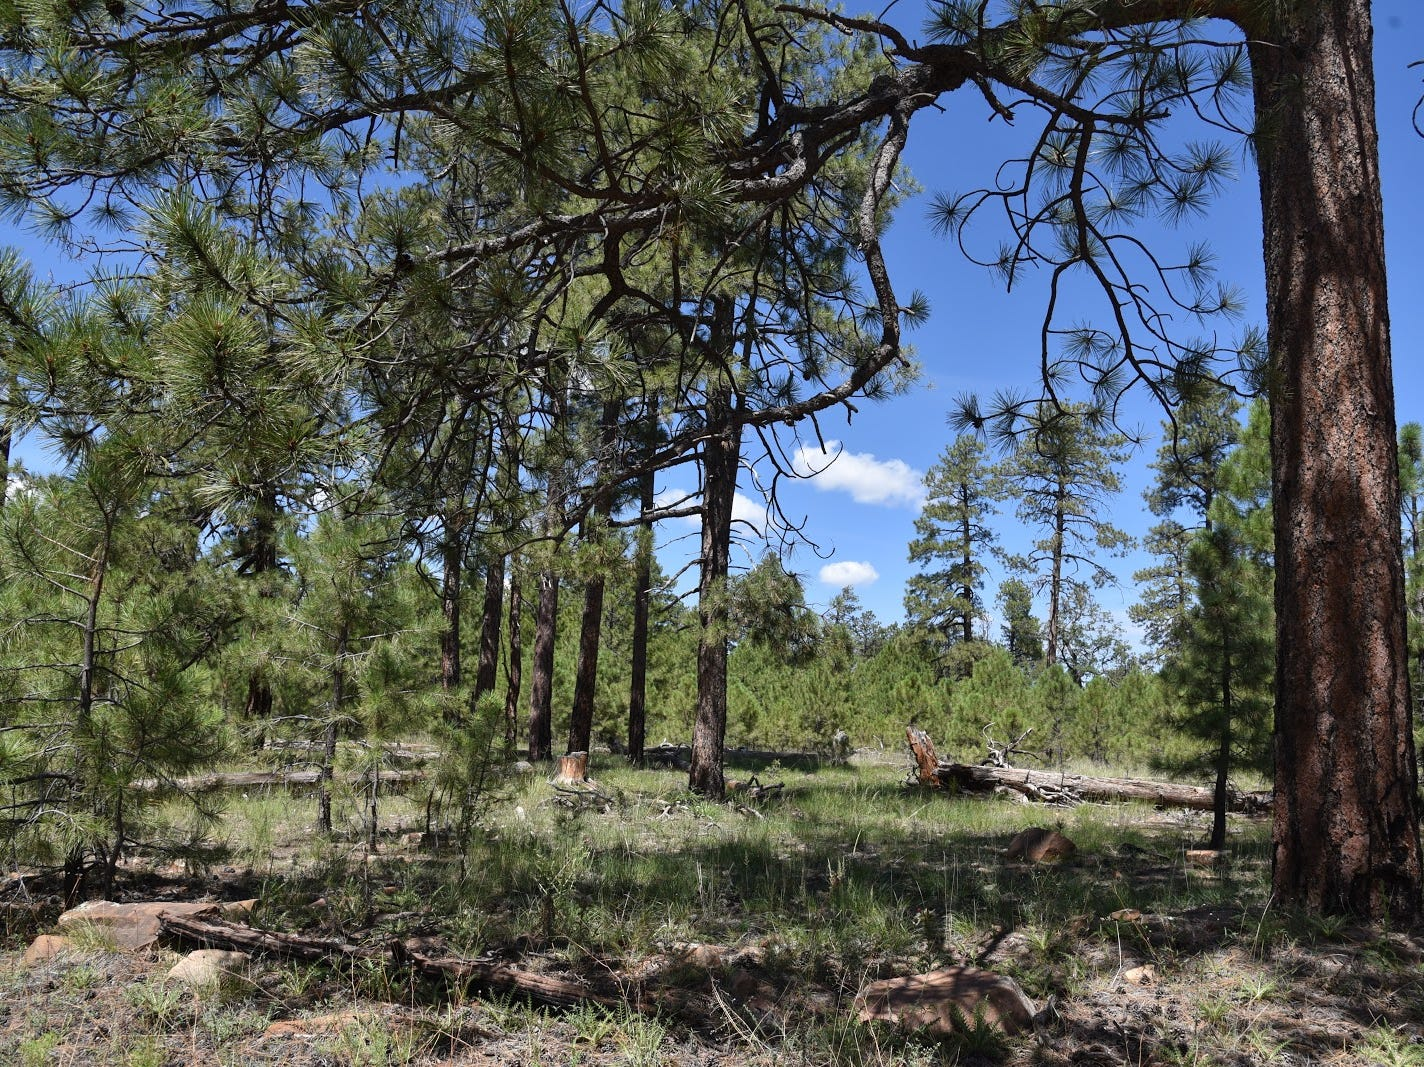 Ponderosa pines dominate the forests that flank Merzville Road.